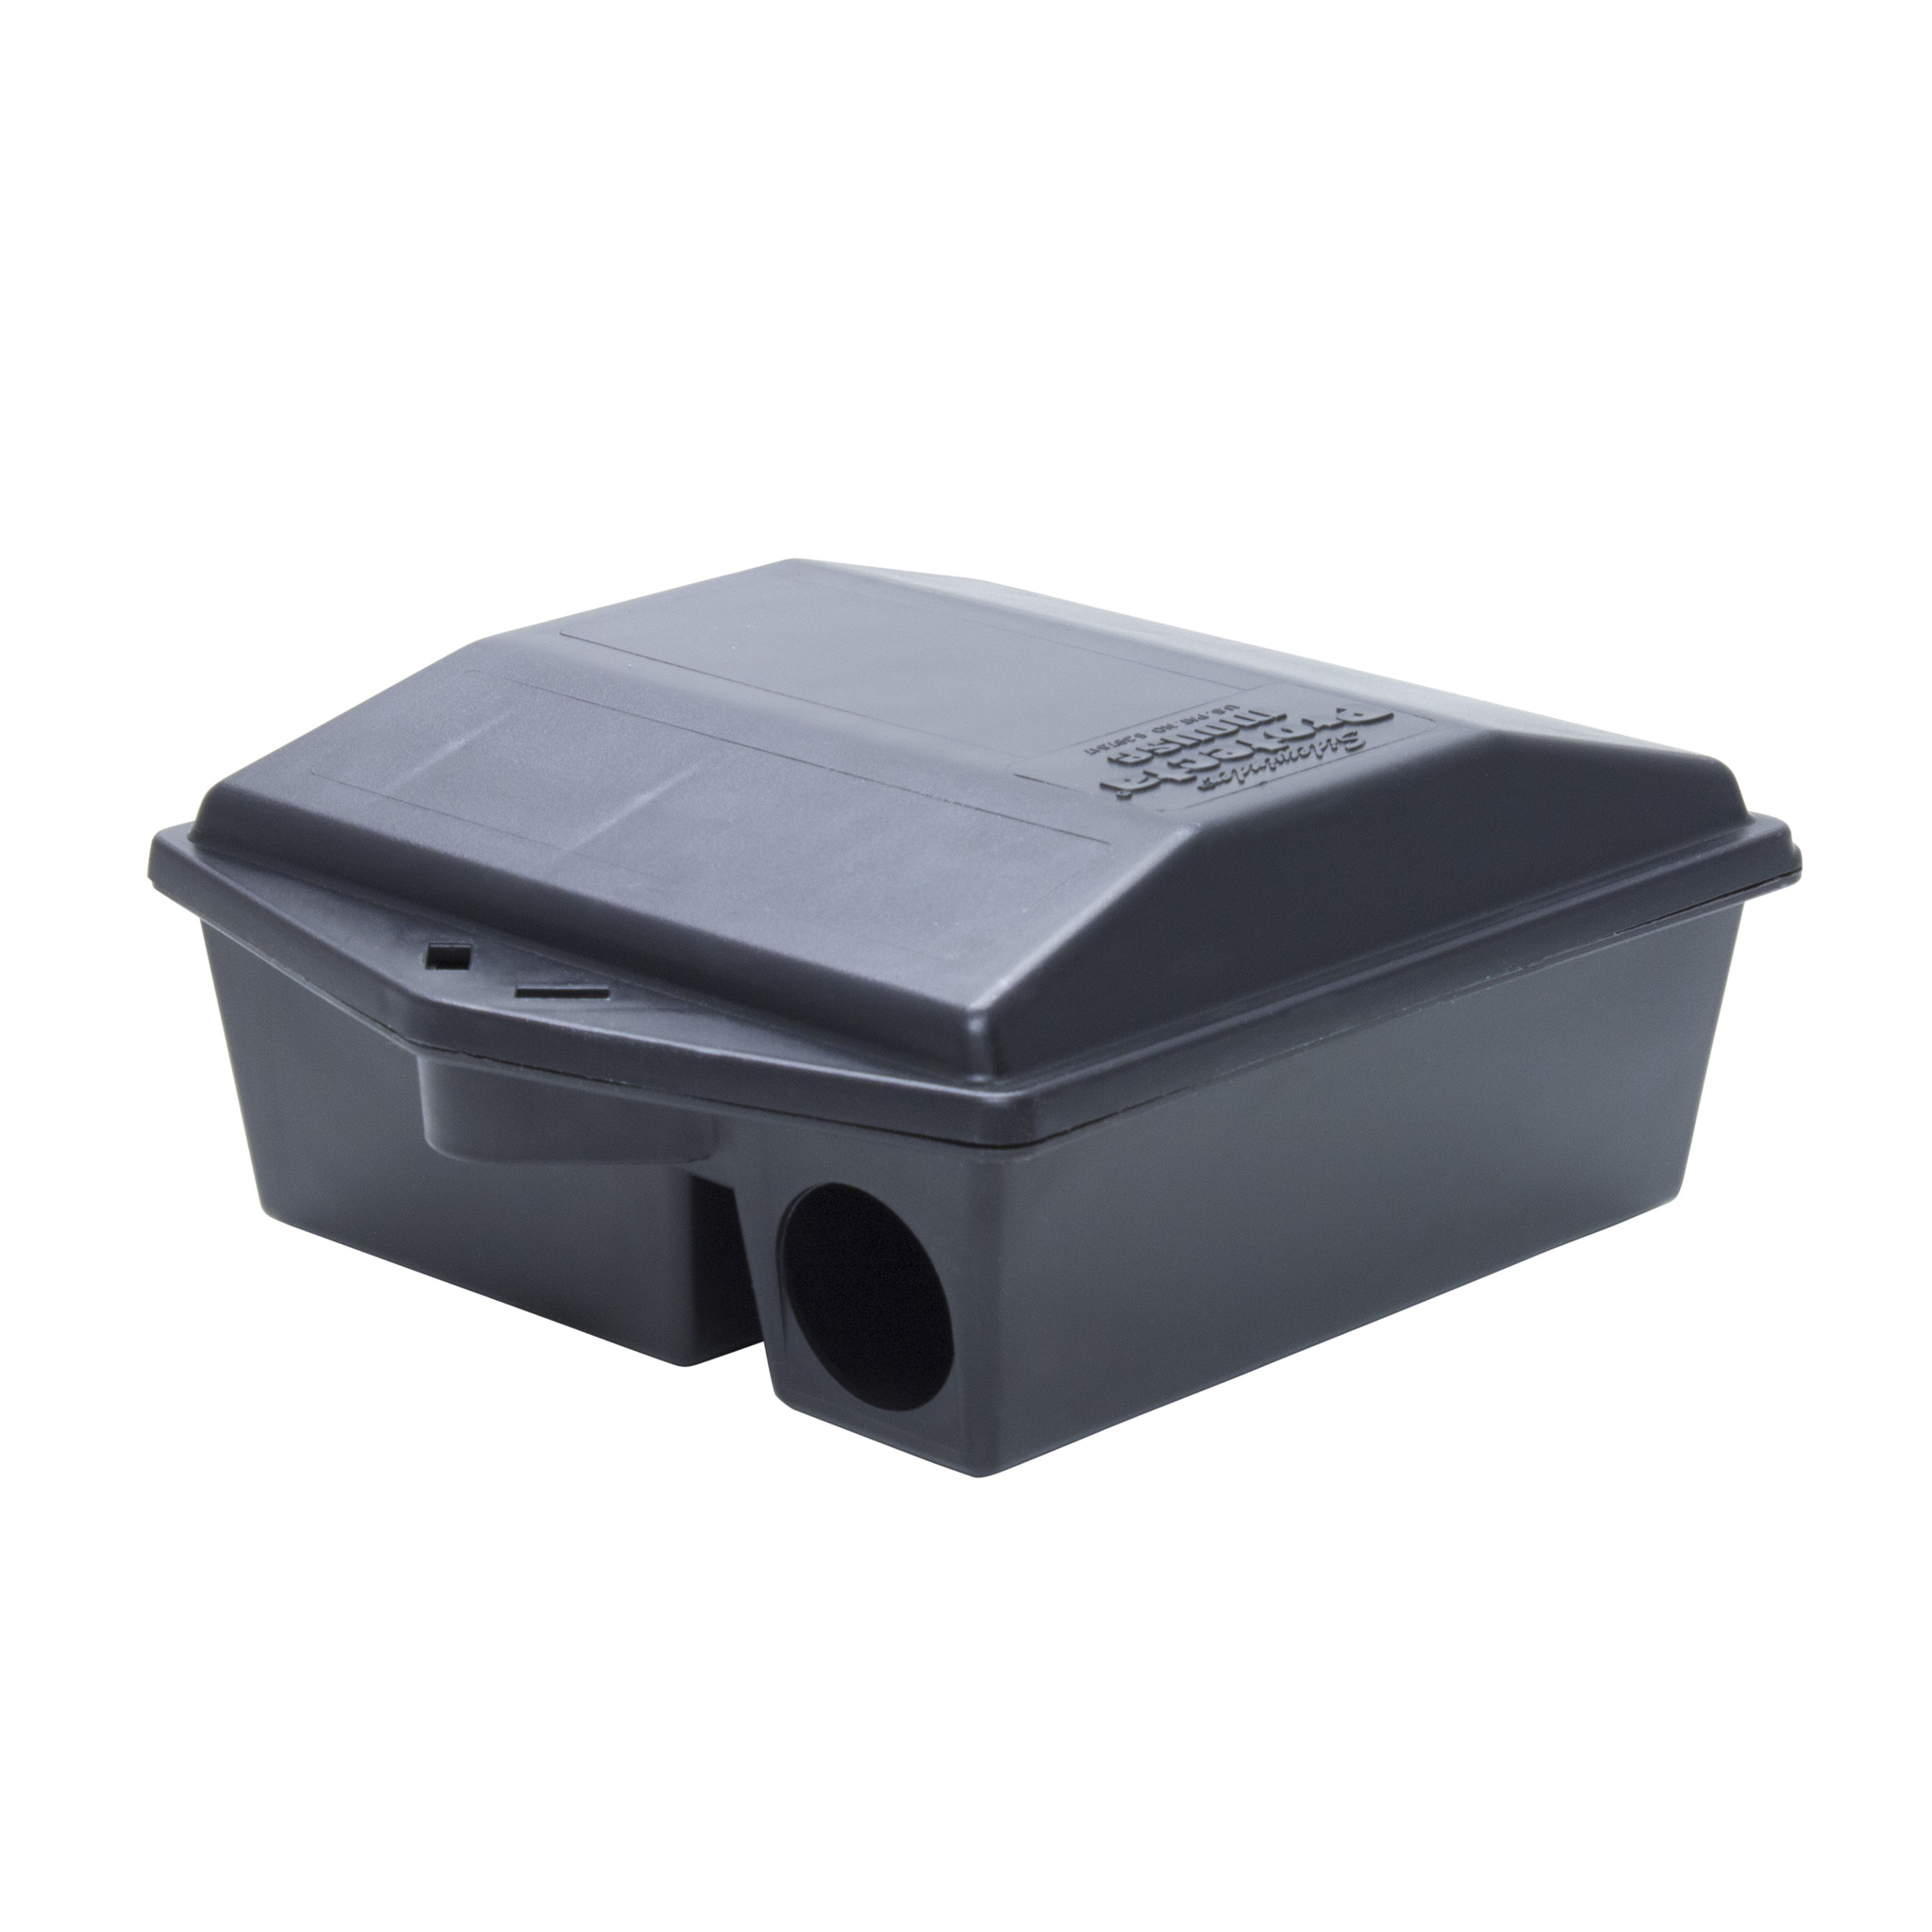 Mouse Bait Boxes Protecta Mouse Bait Stations